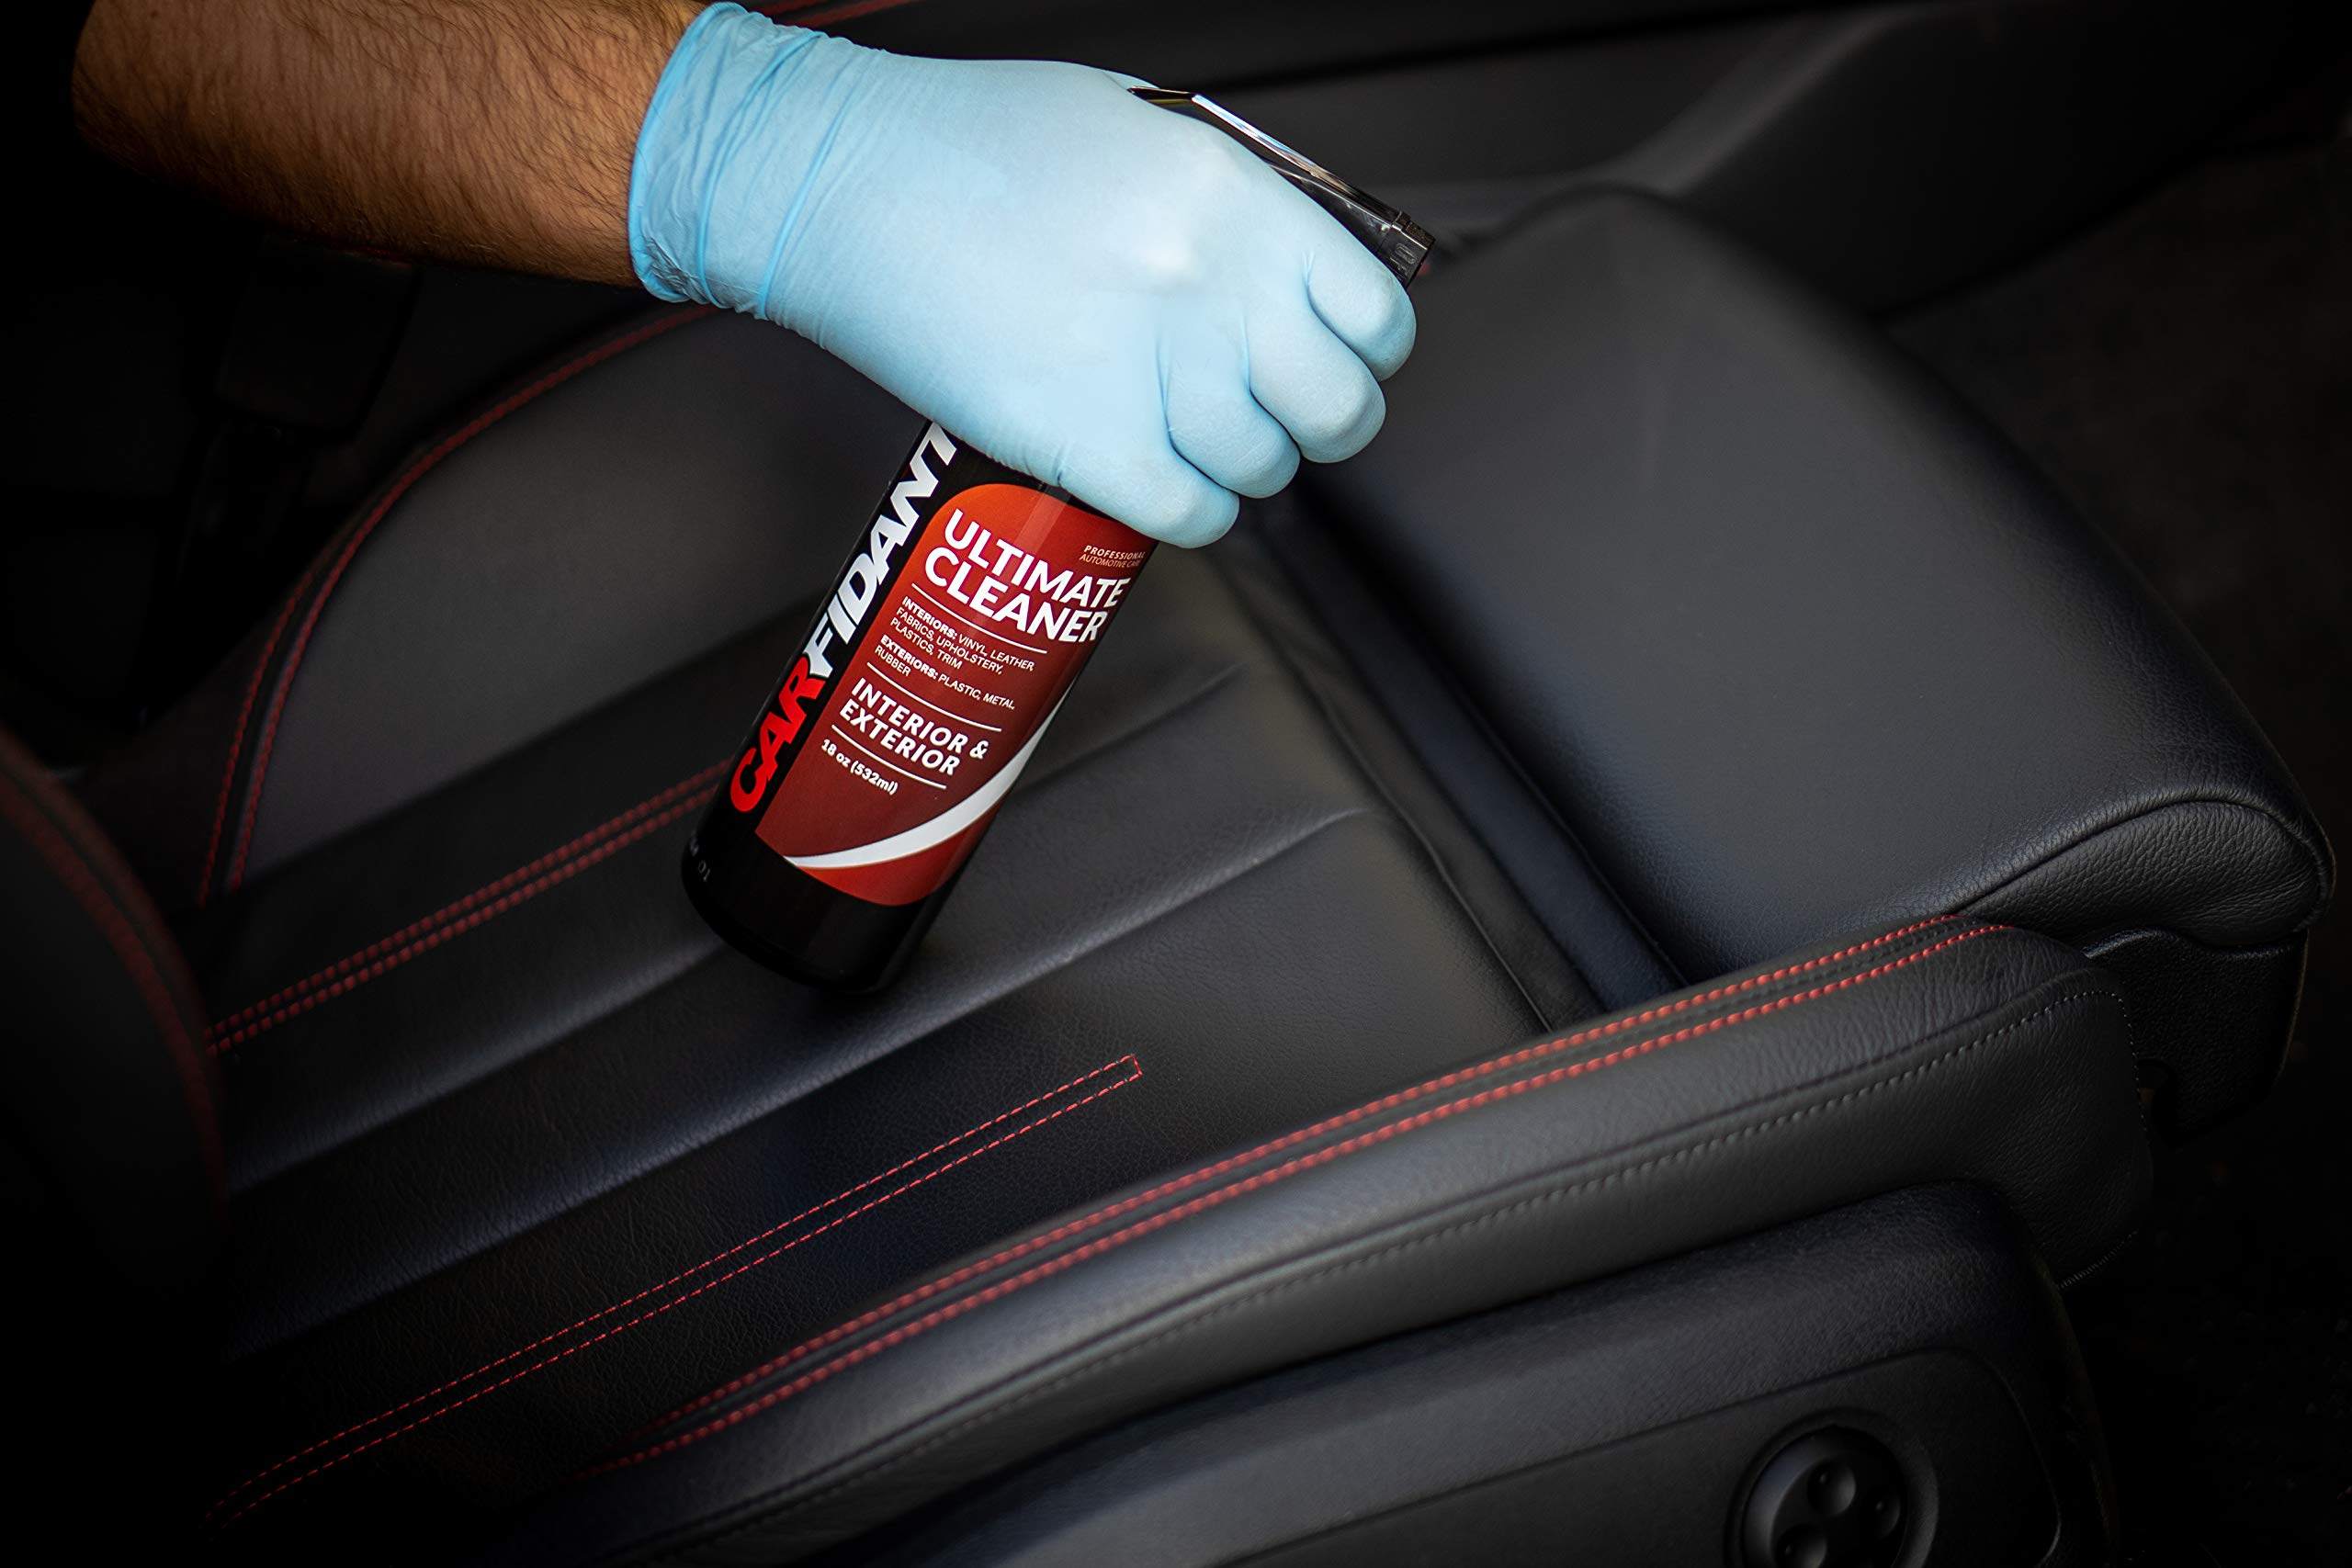 Carfidant Ultimate Car Interior Cleaner - Automotive Interior & Exterior Cleaner All Purpose Cleaner for Car Carpet Upholstery Leather Vinyl Cloth Plastic Seats Trim Engine Mats - Car Cleaning Kit by Carfidant (Image #7)